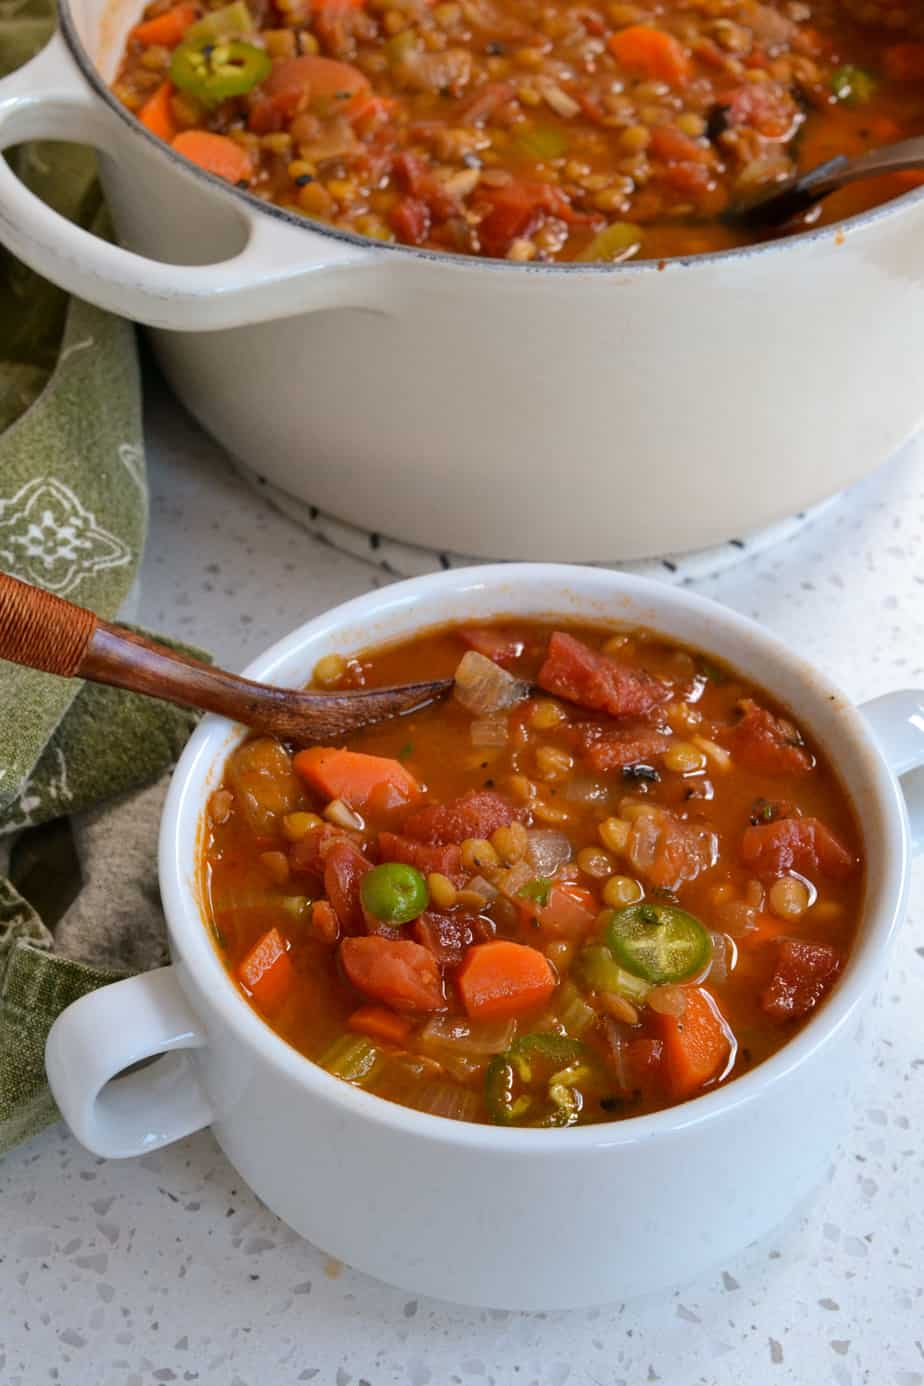 A bowl full of lentil vegetable soup topped with jalapeno rings.